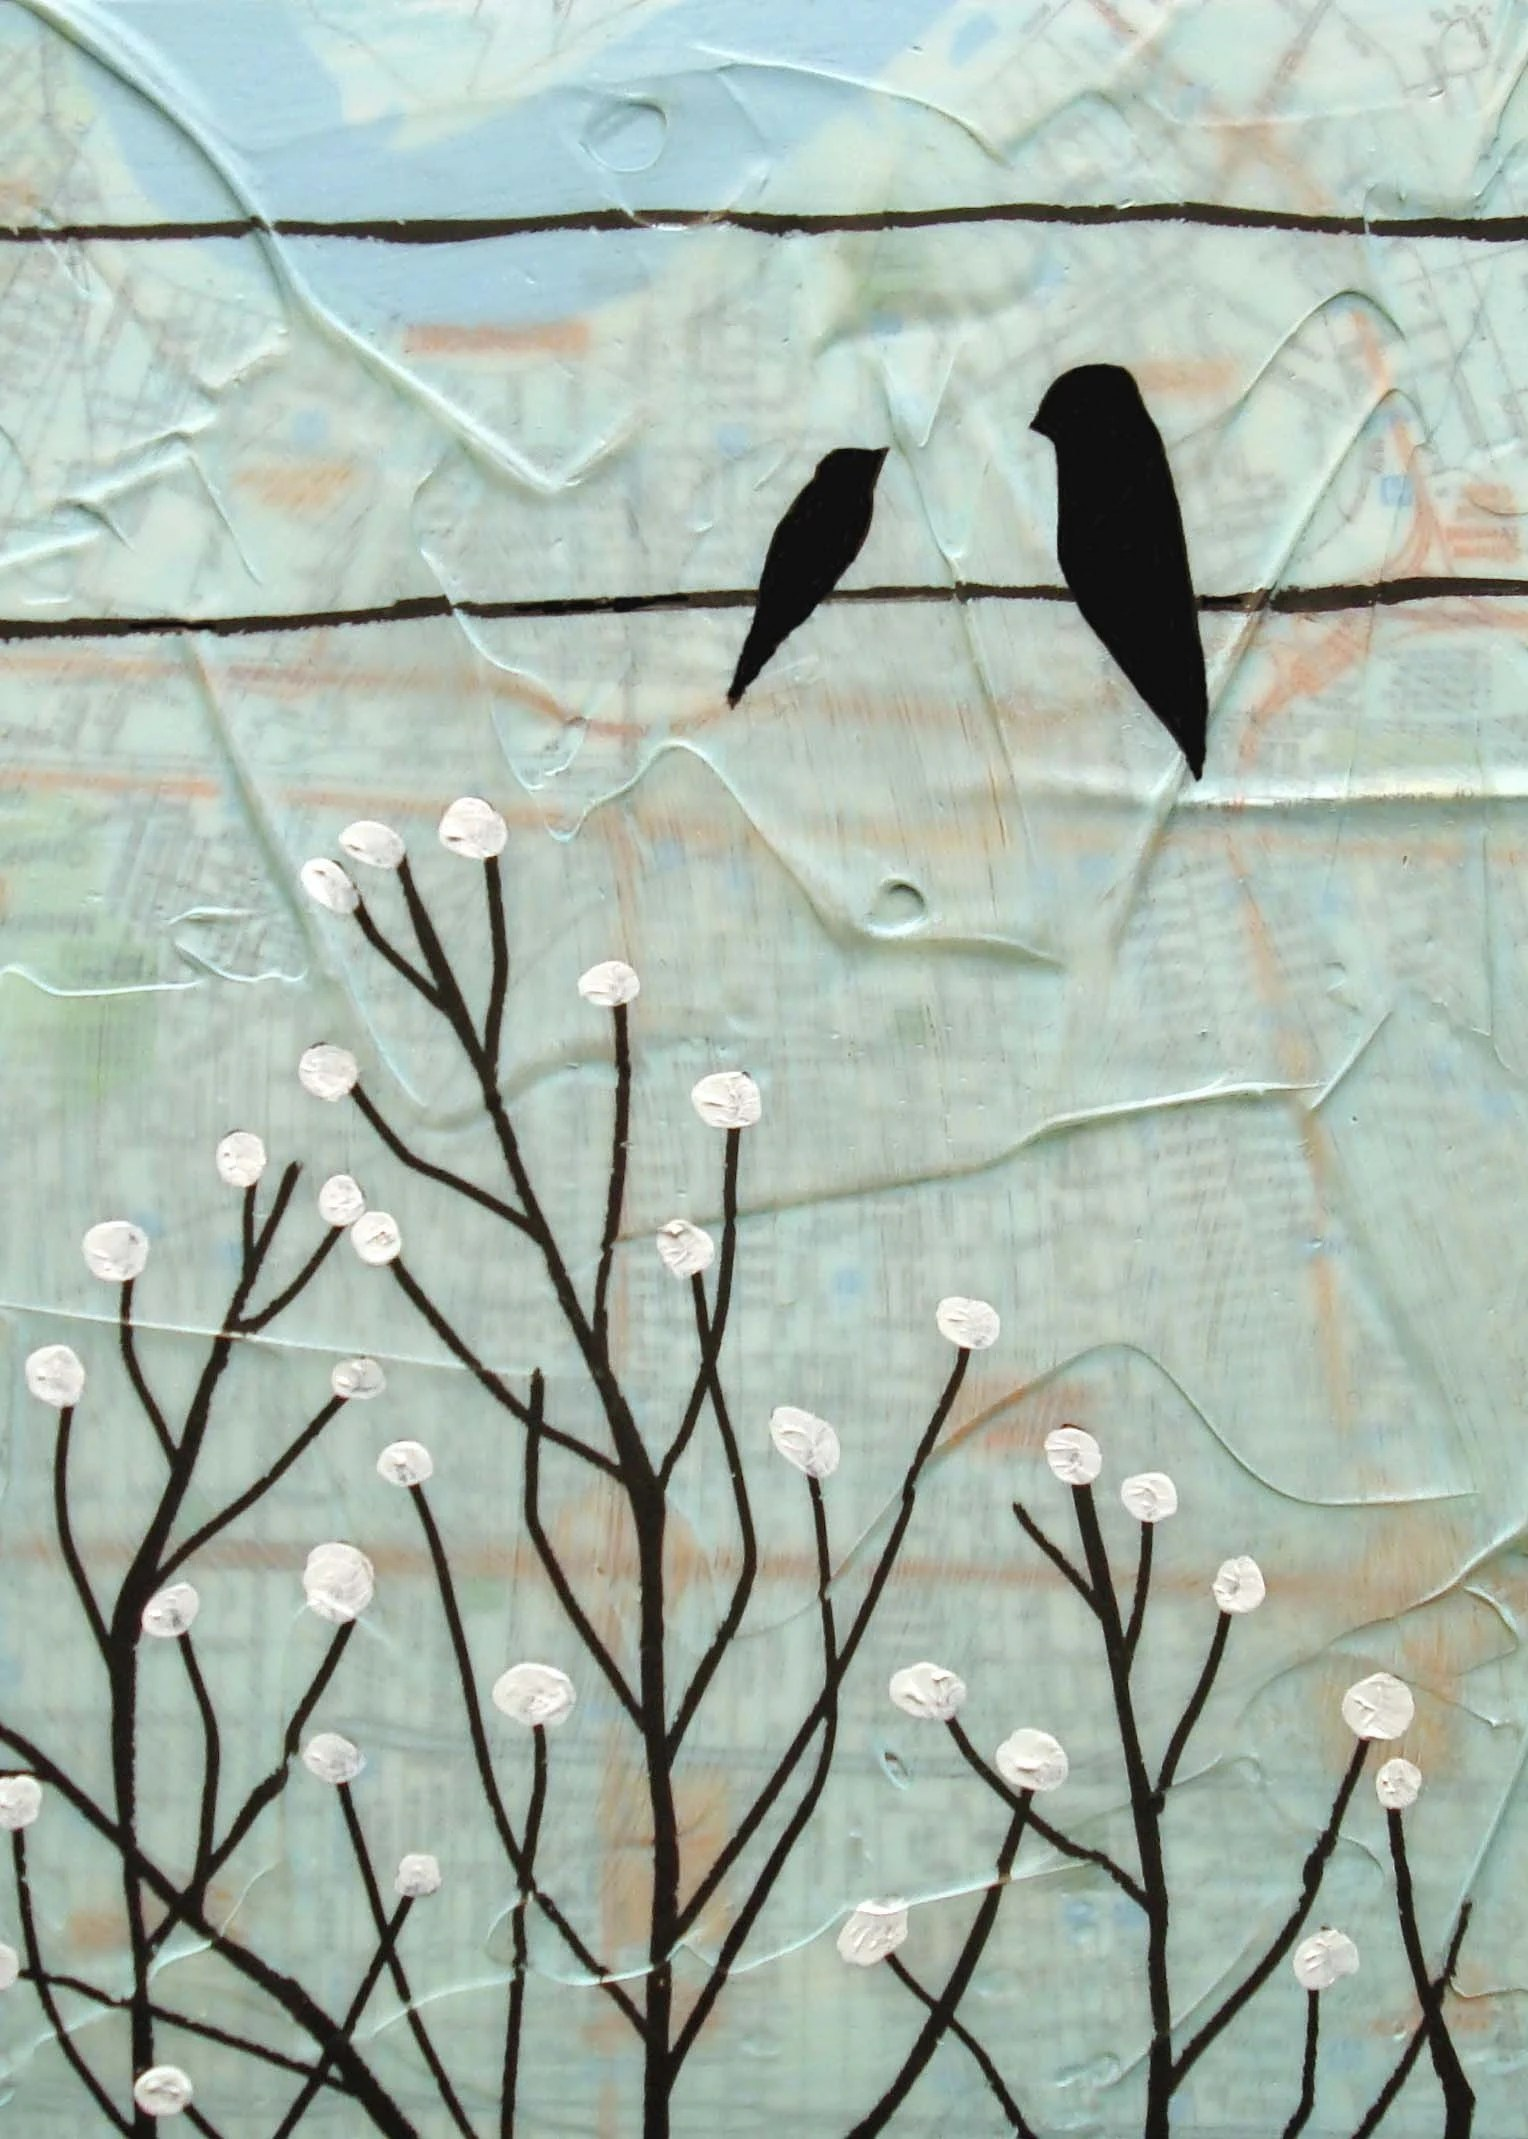 Birds and Branches with Red Buds